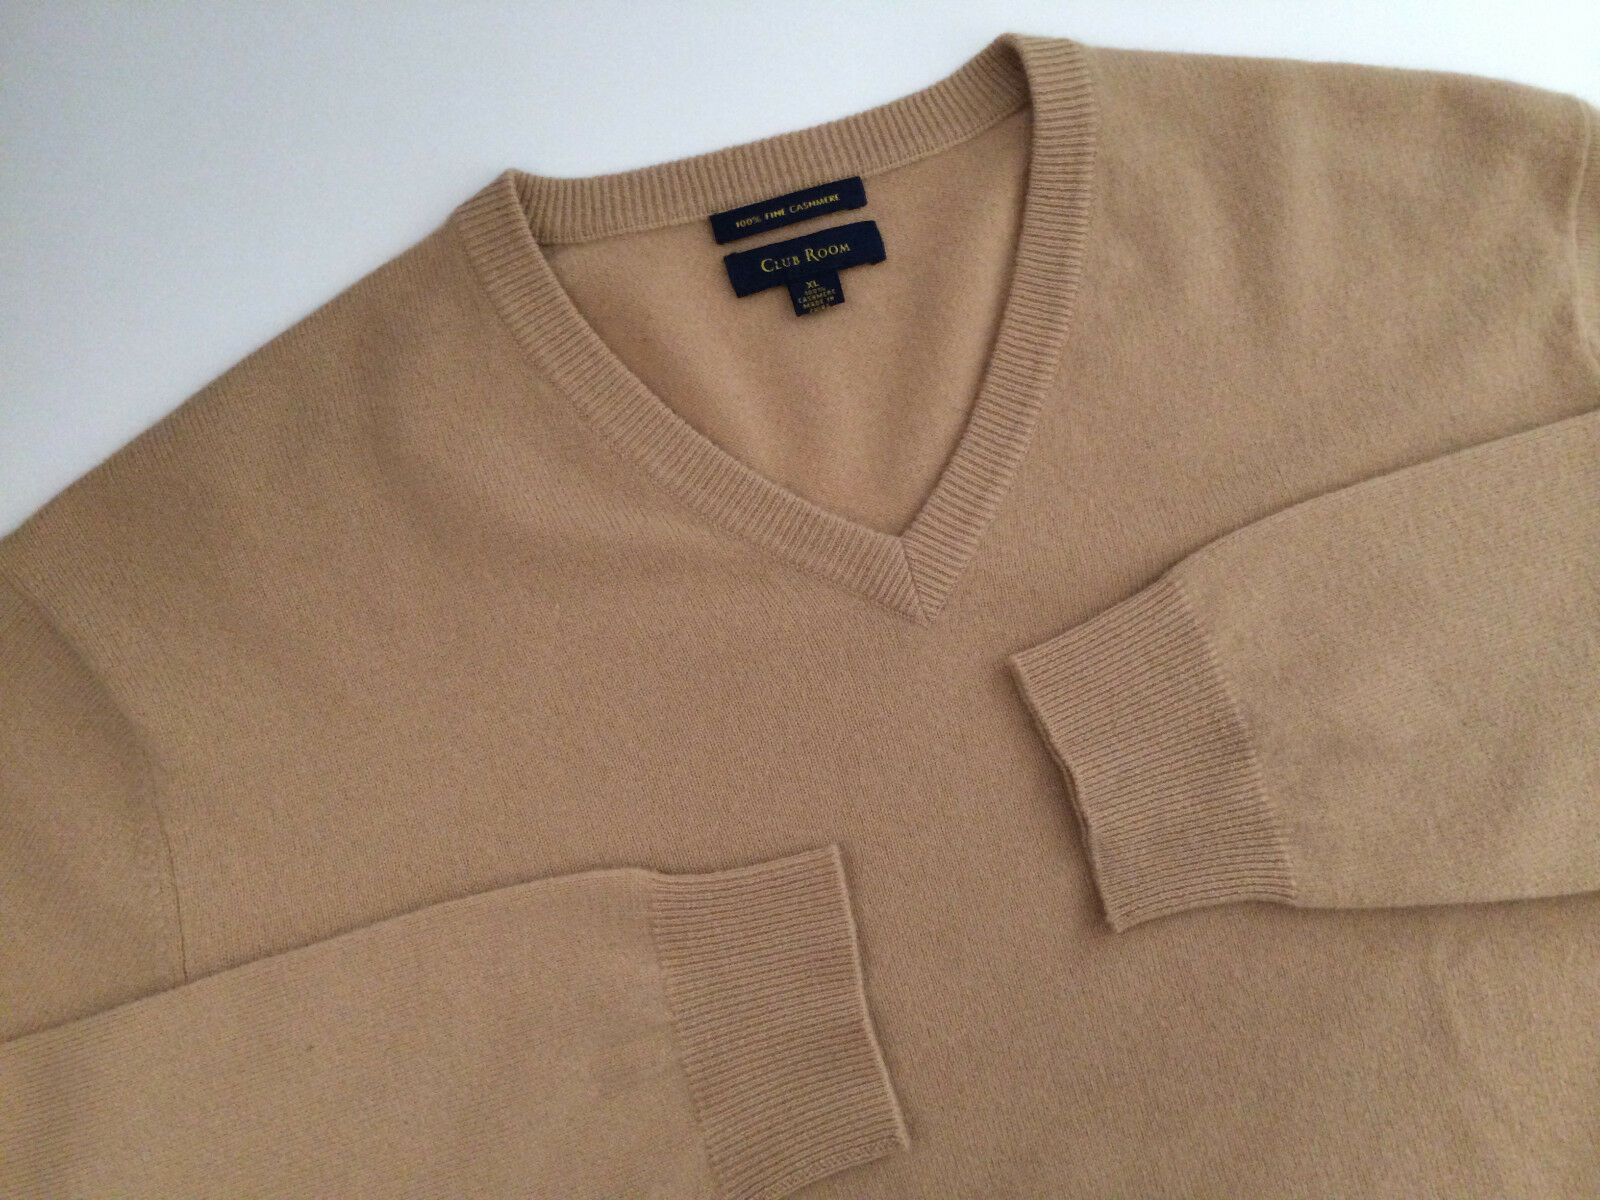 Incredible Club Room 100% Cashmere Sweater - Size XL   LS